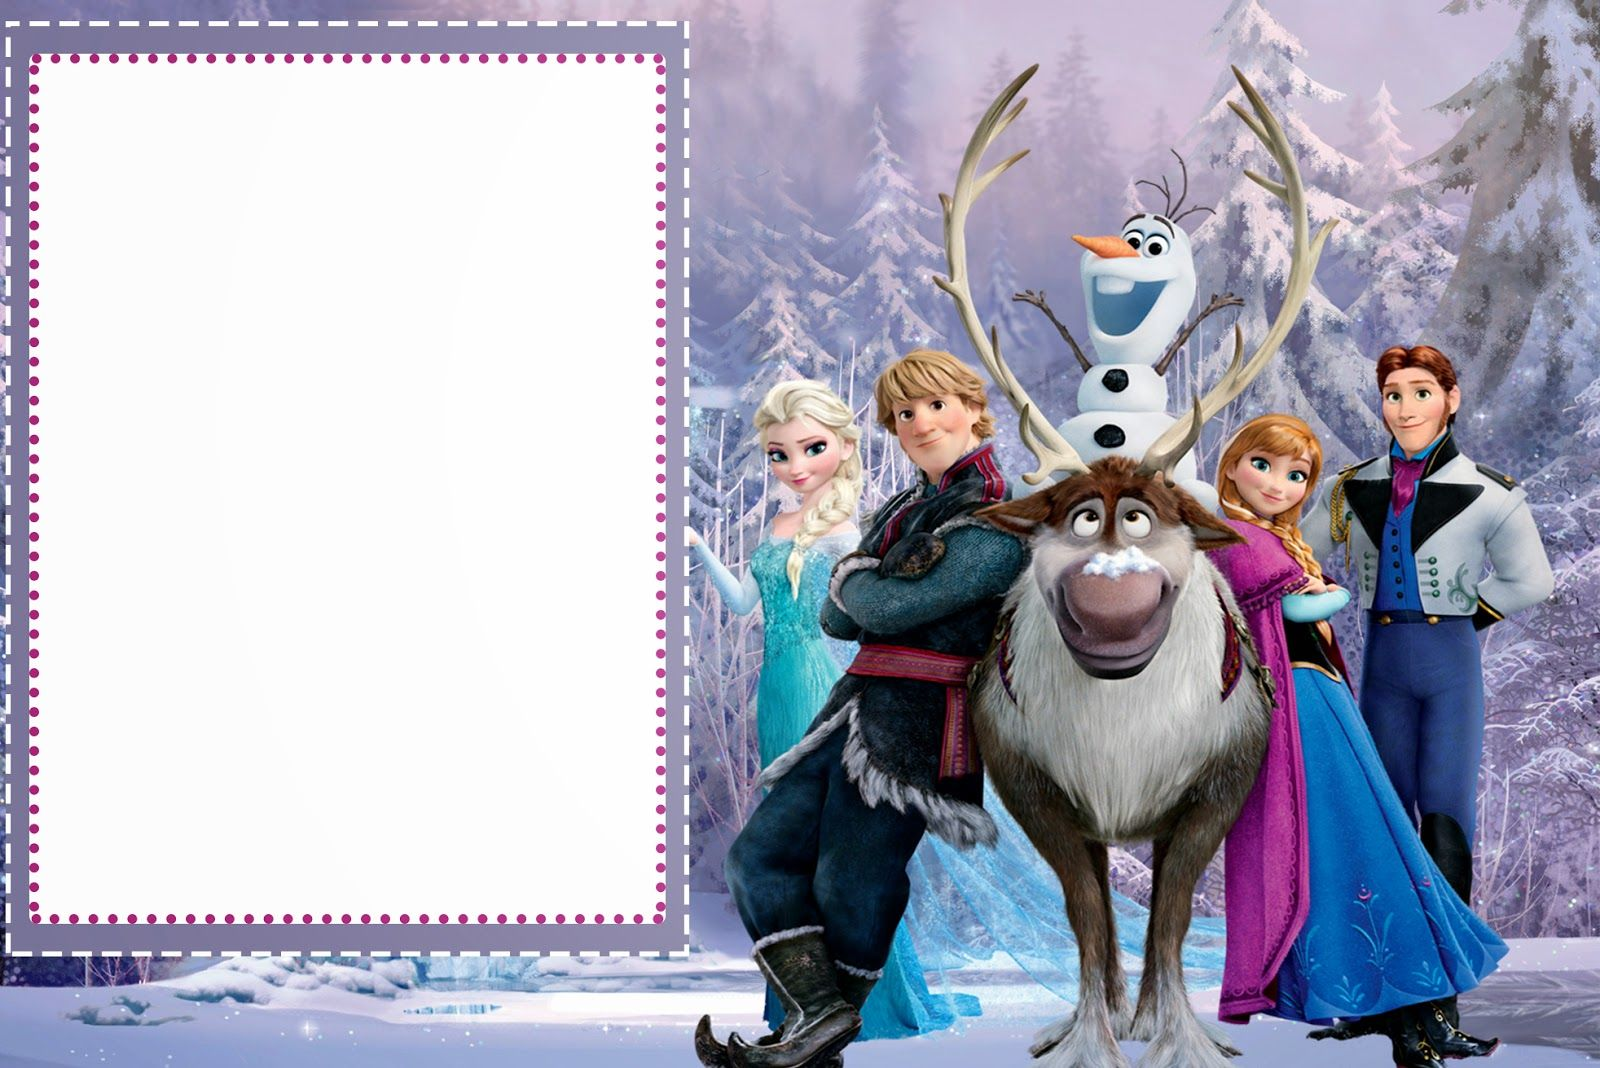 Free Disney Frozen Birthday Invitations ~ Frozen tarjetas o invitaciones para imprimir gratis ideas y